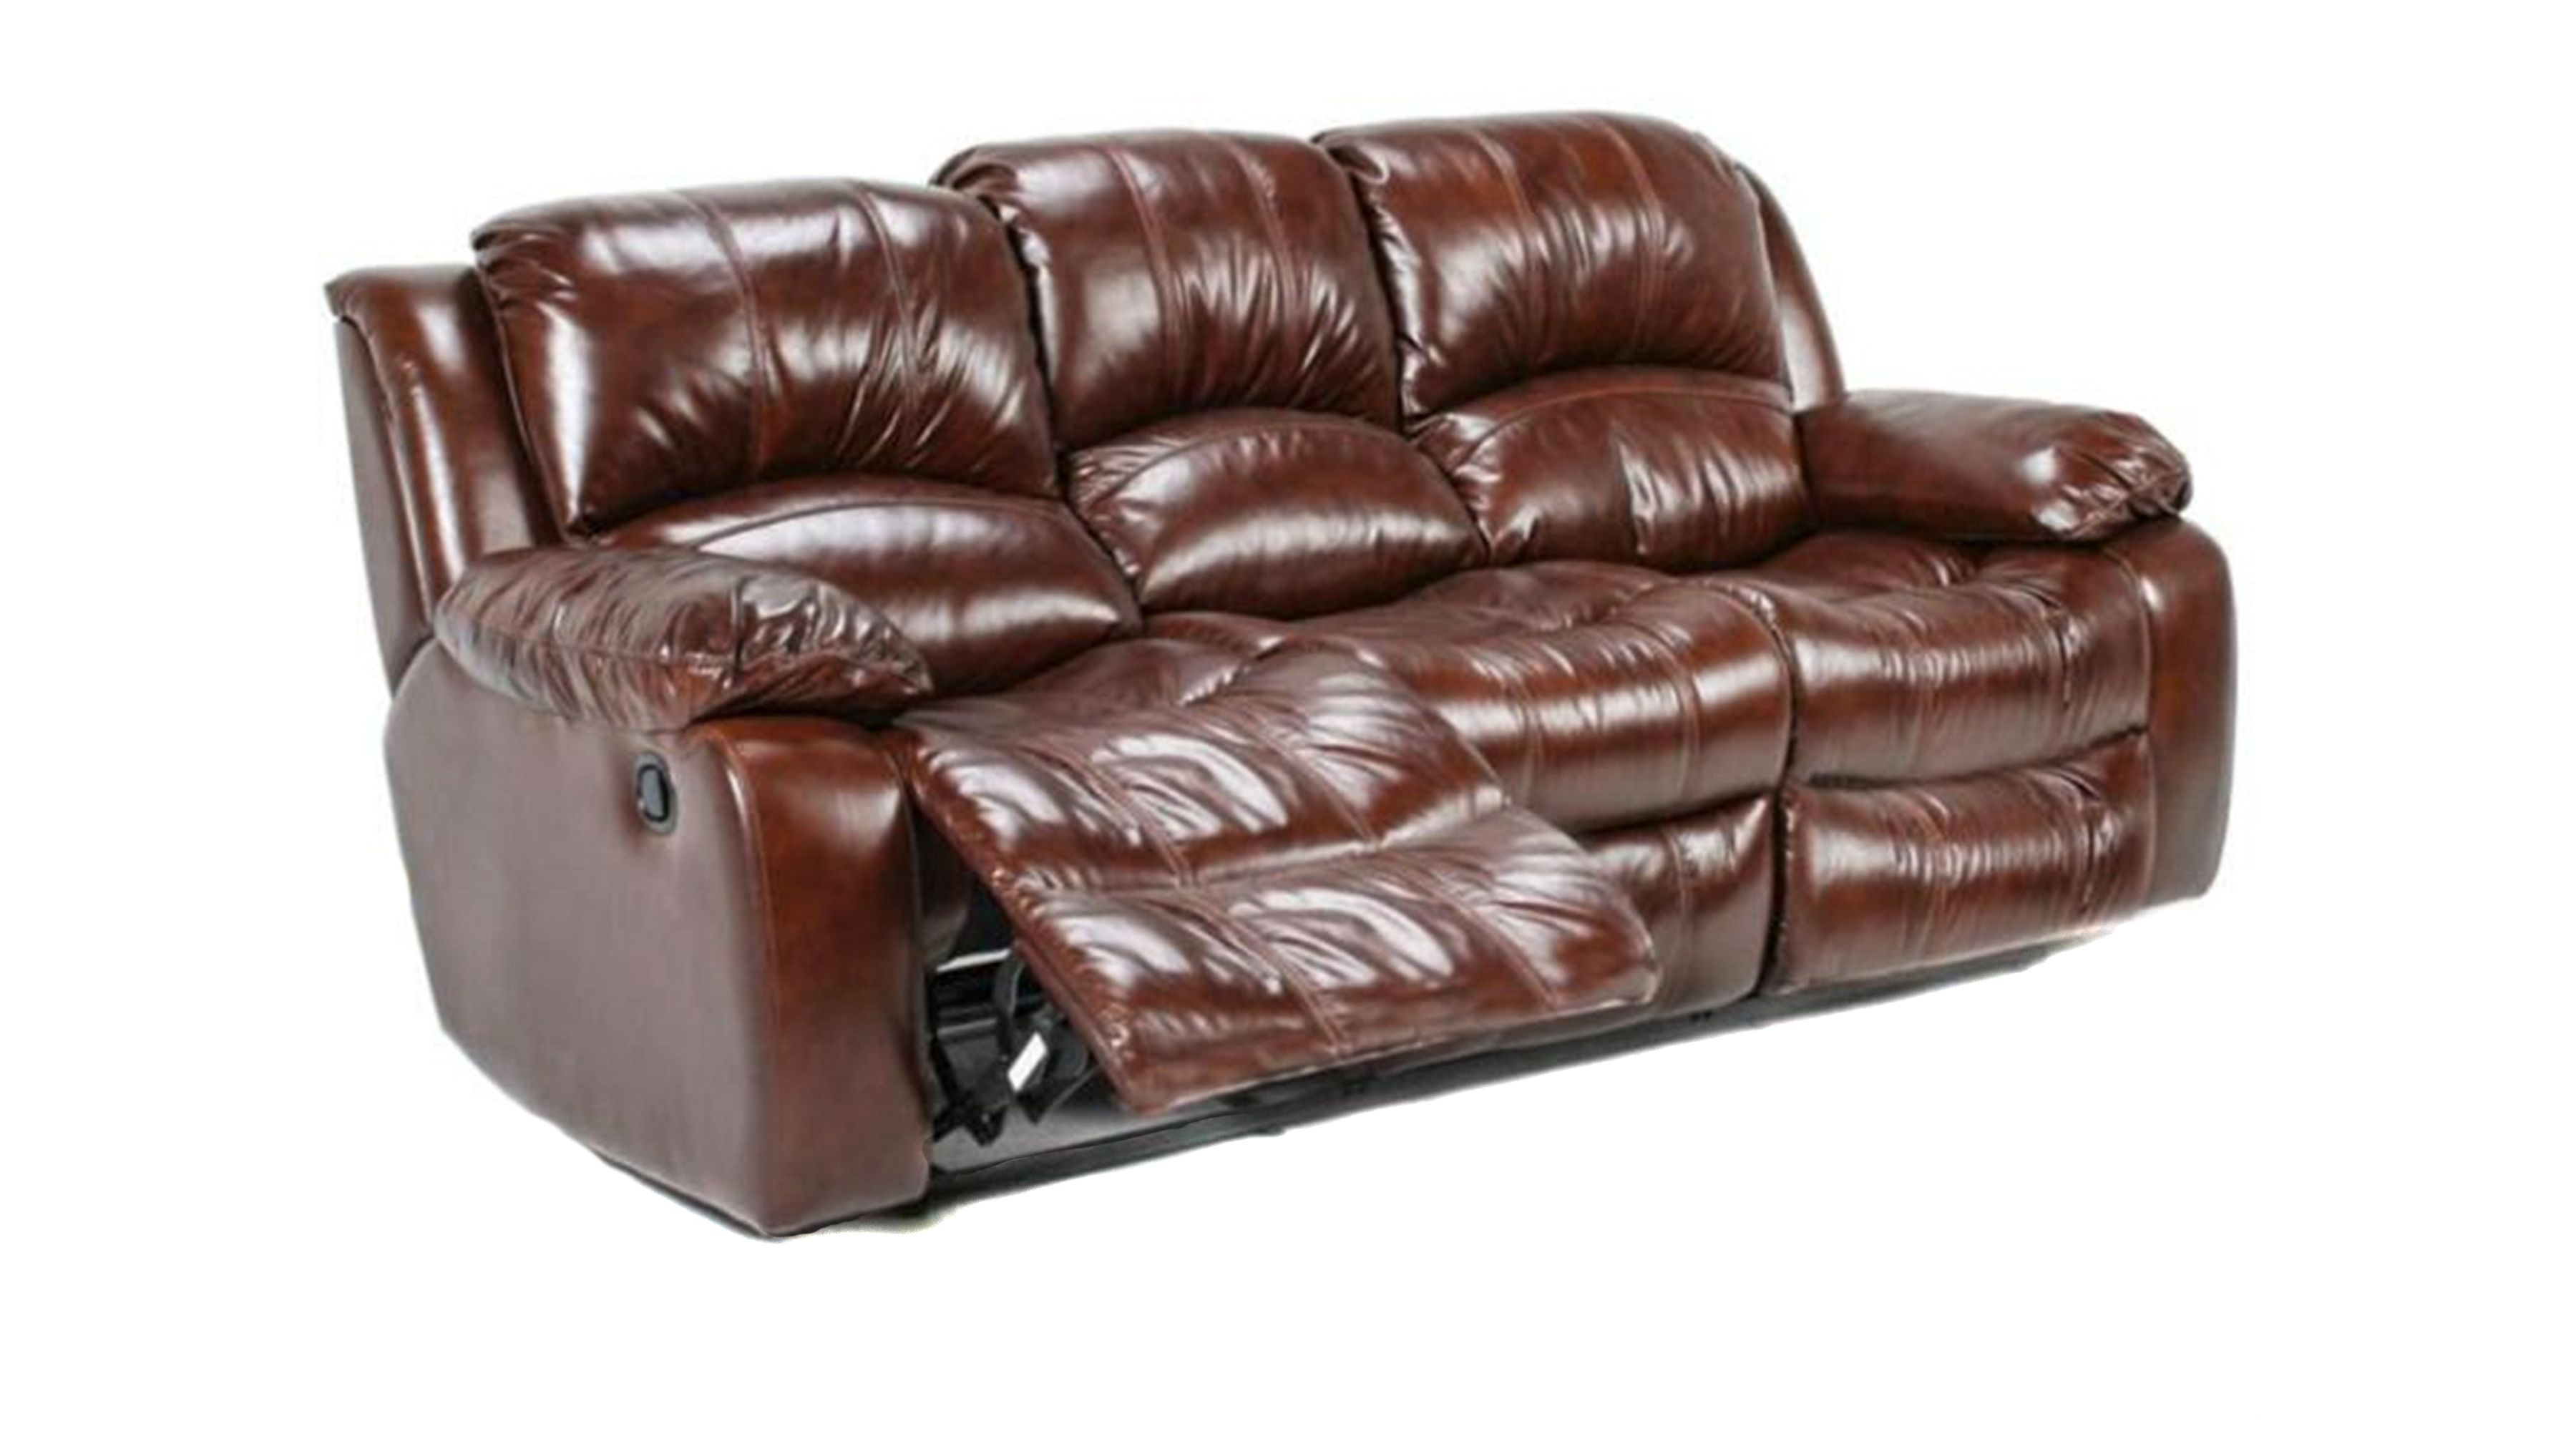 reclining sofa leather brown best rug color avalon power new living room